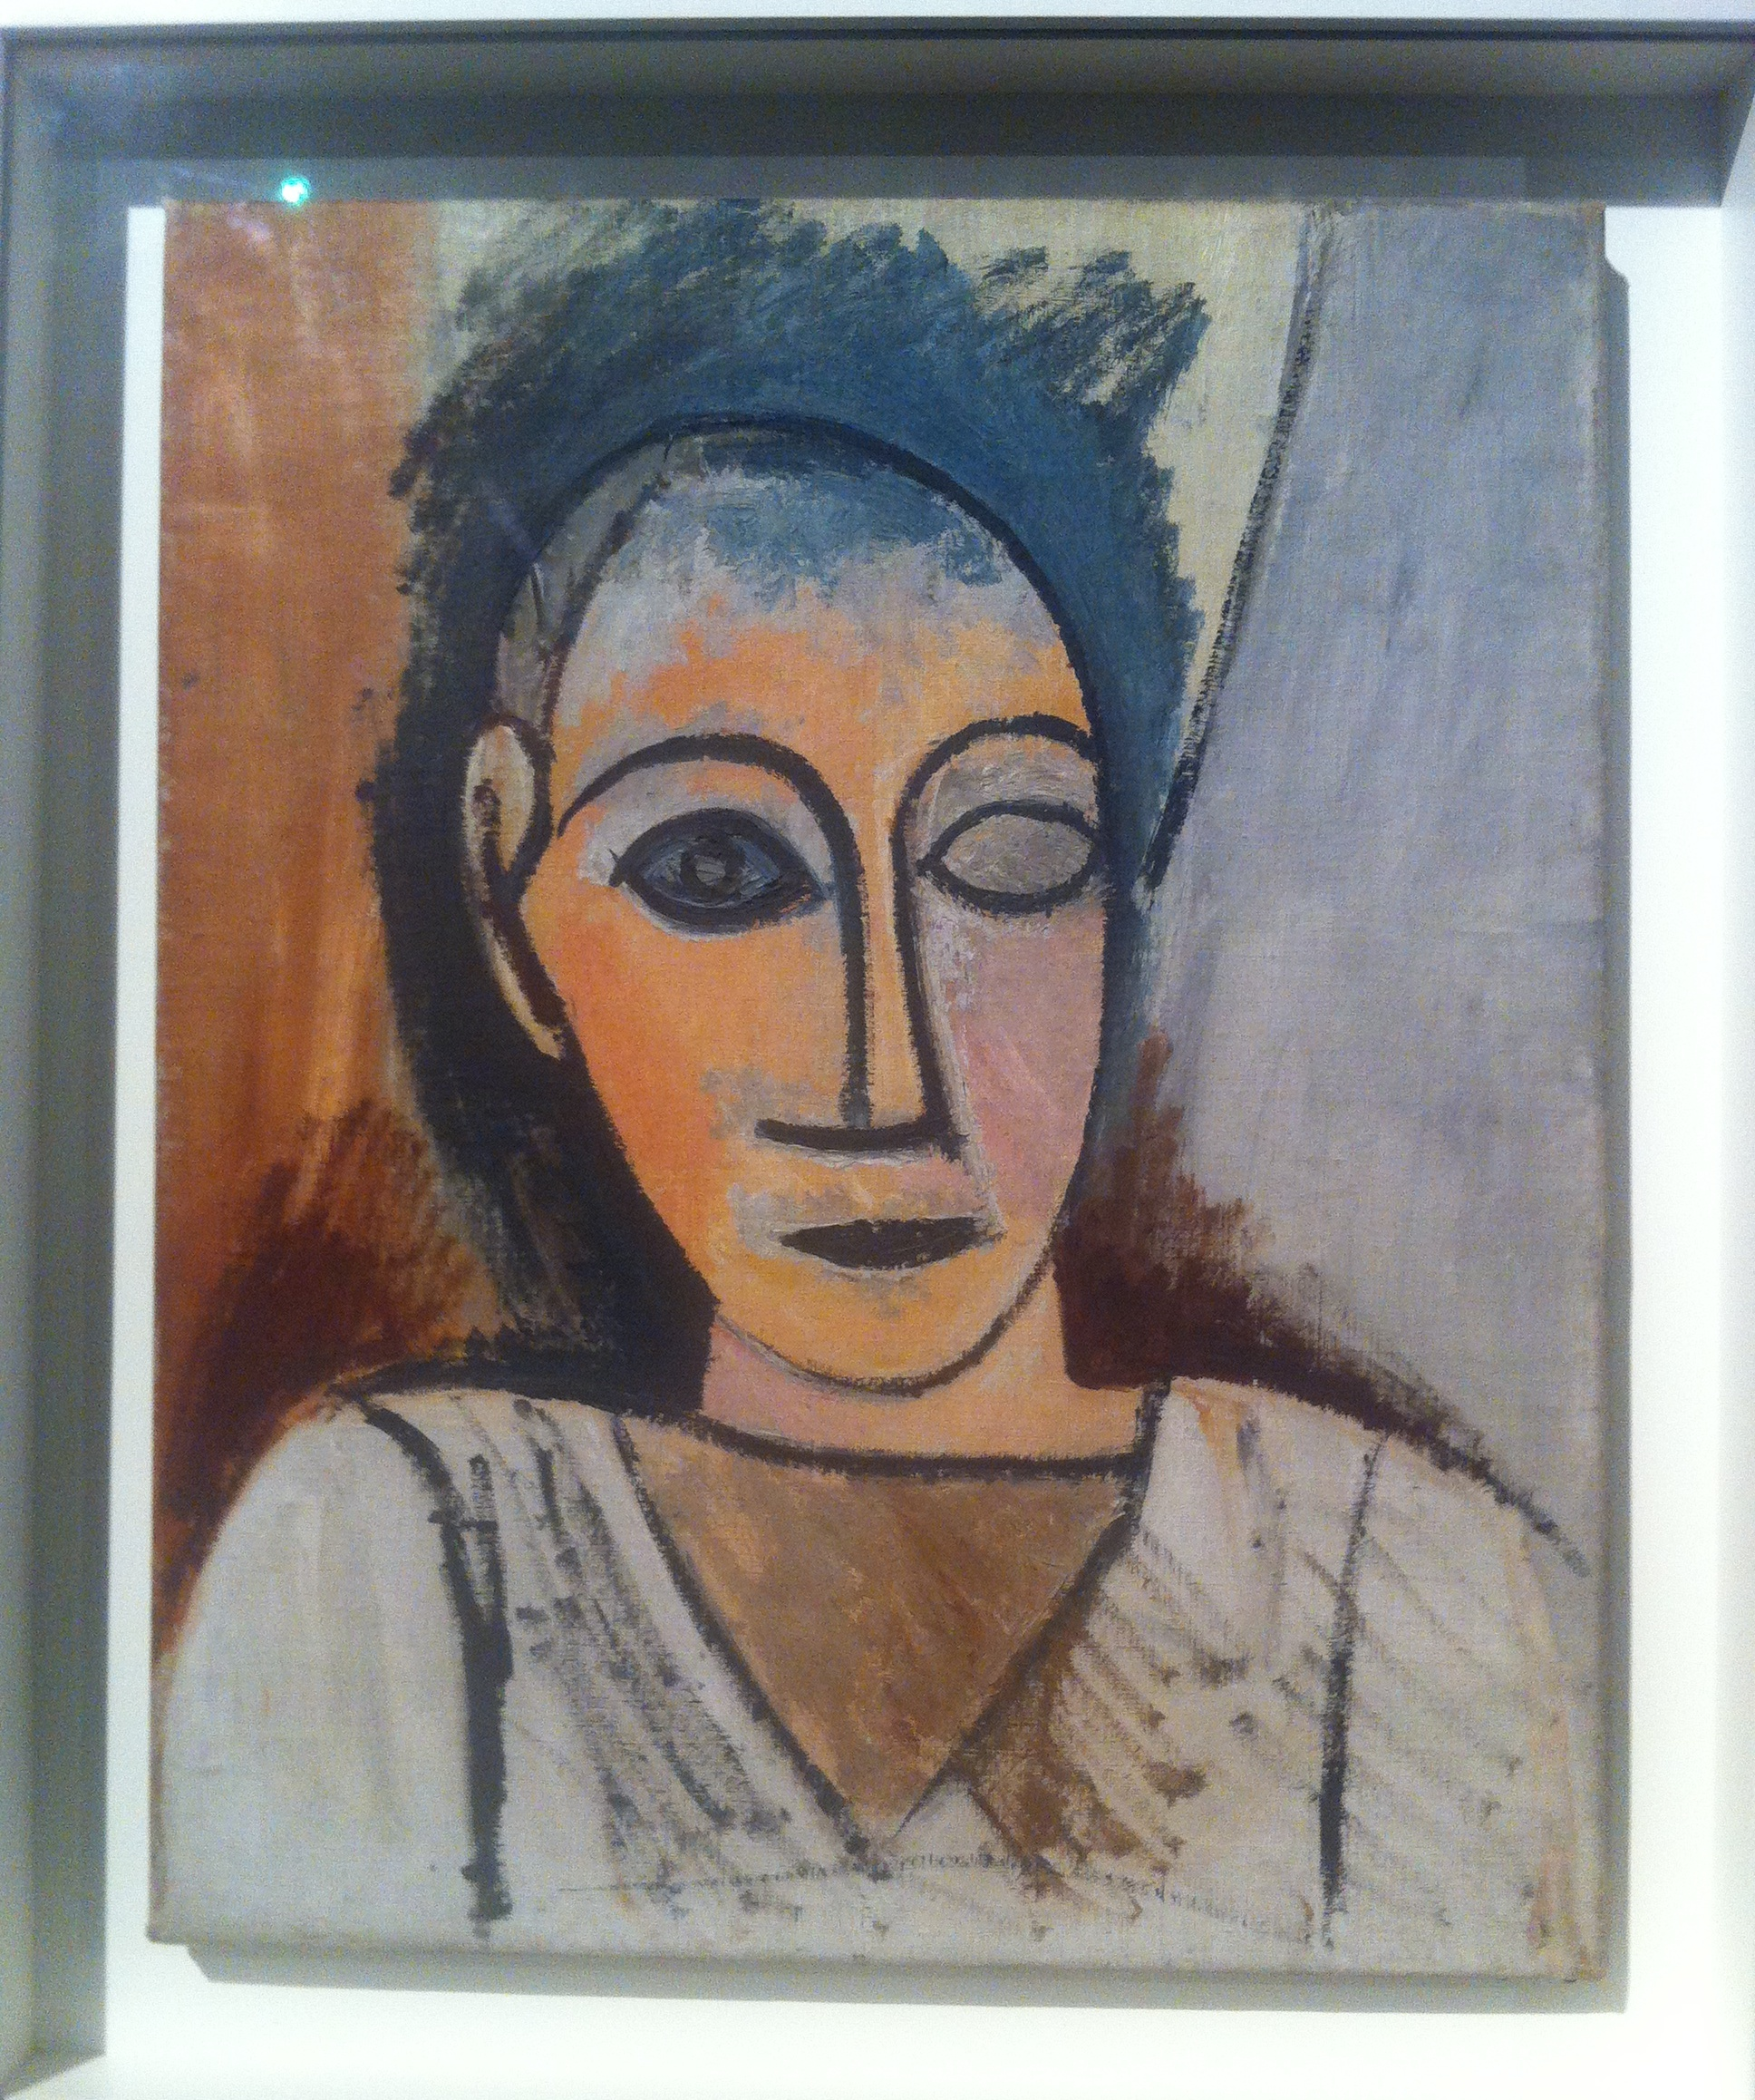 Picasso a Palazzo Reale, Milano, 2012 - Buste d'homme